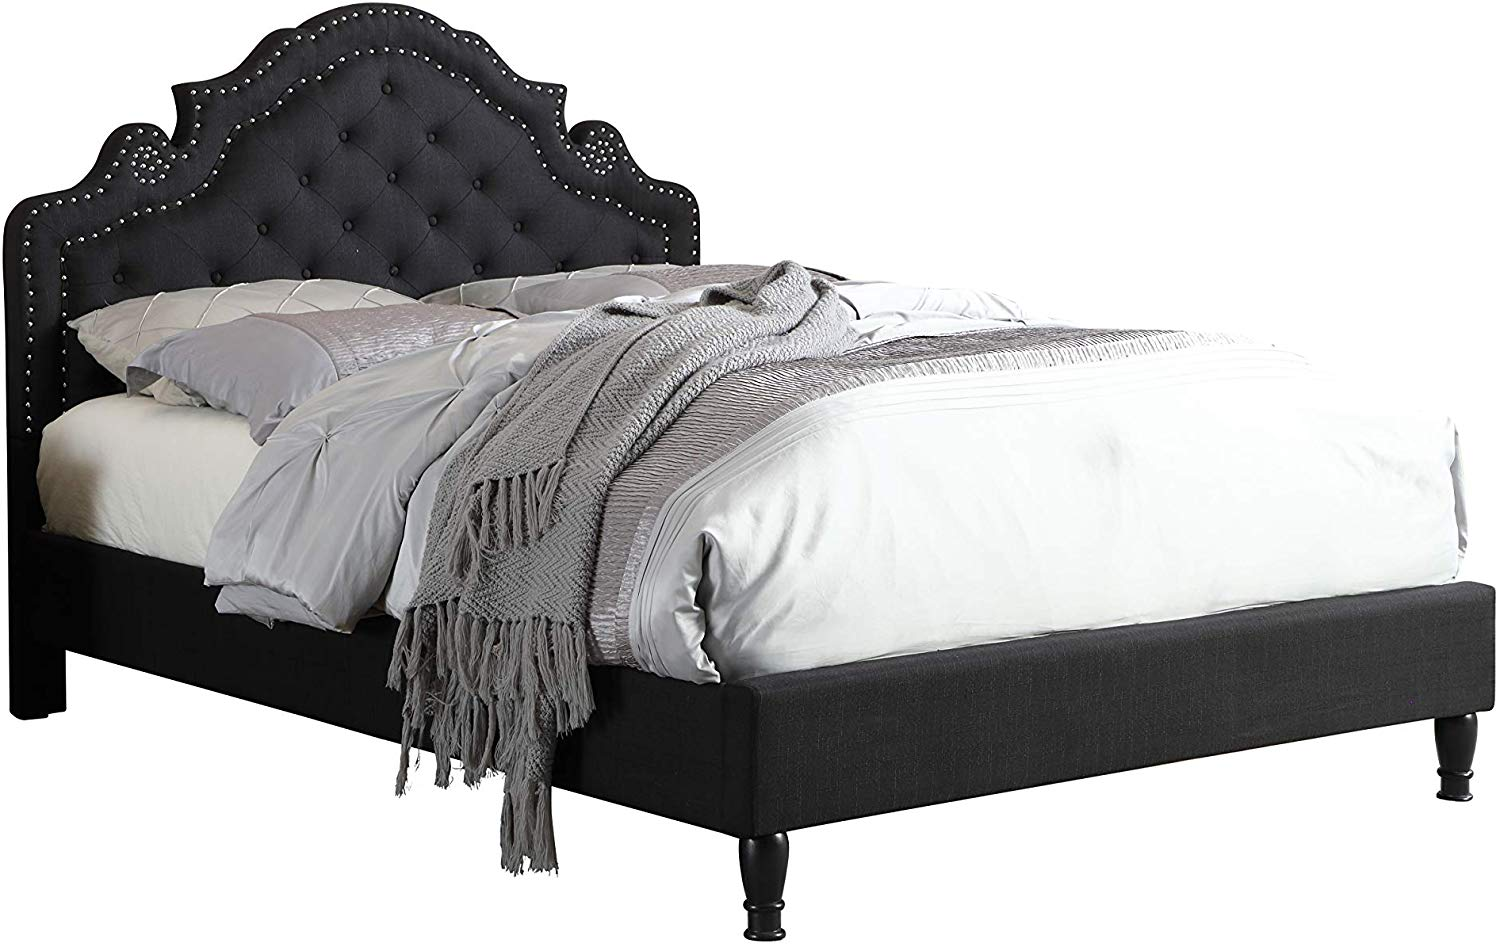 Gothic Furniture 7 Top Product Reviews And Guide Gothic Furniture